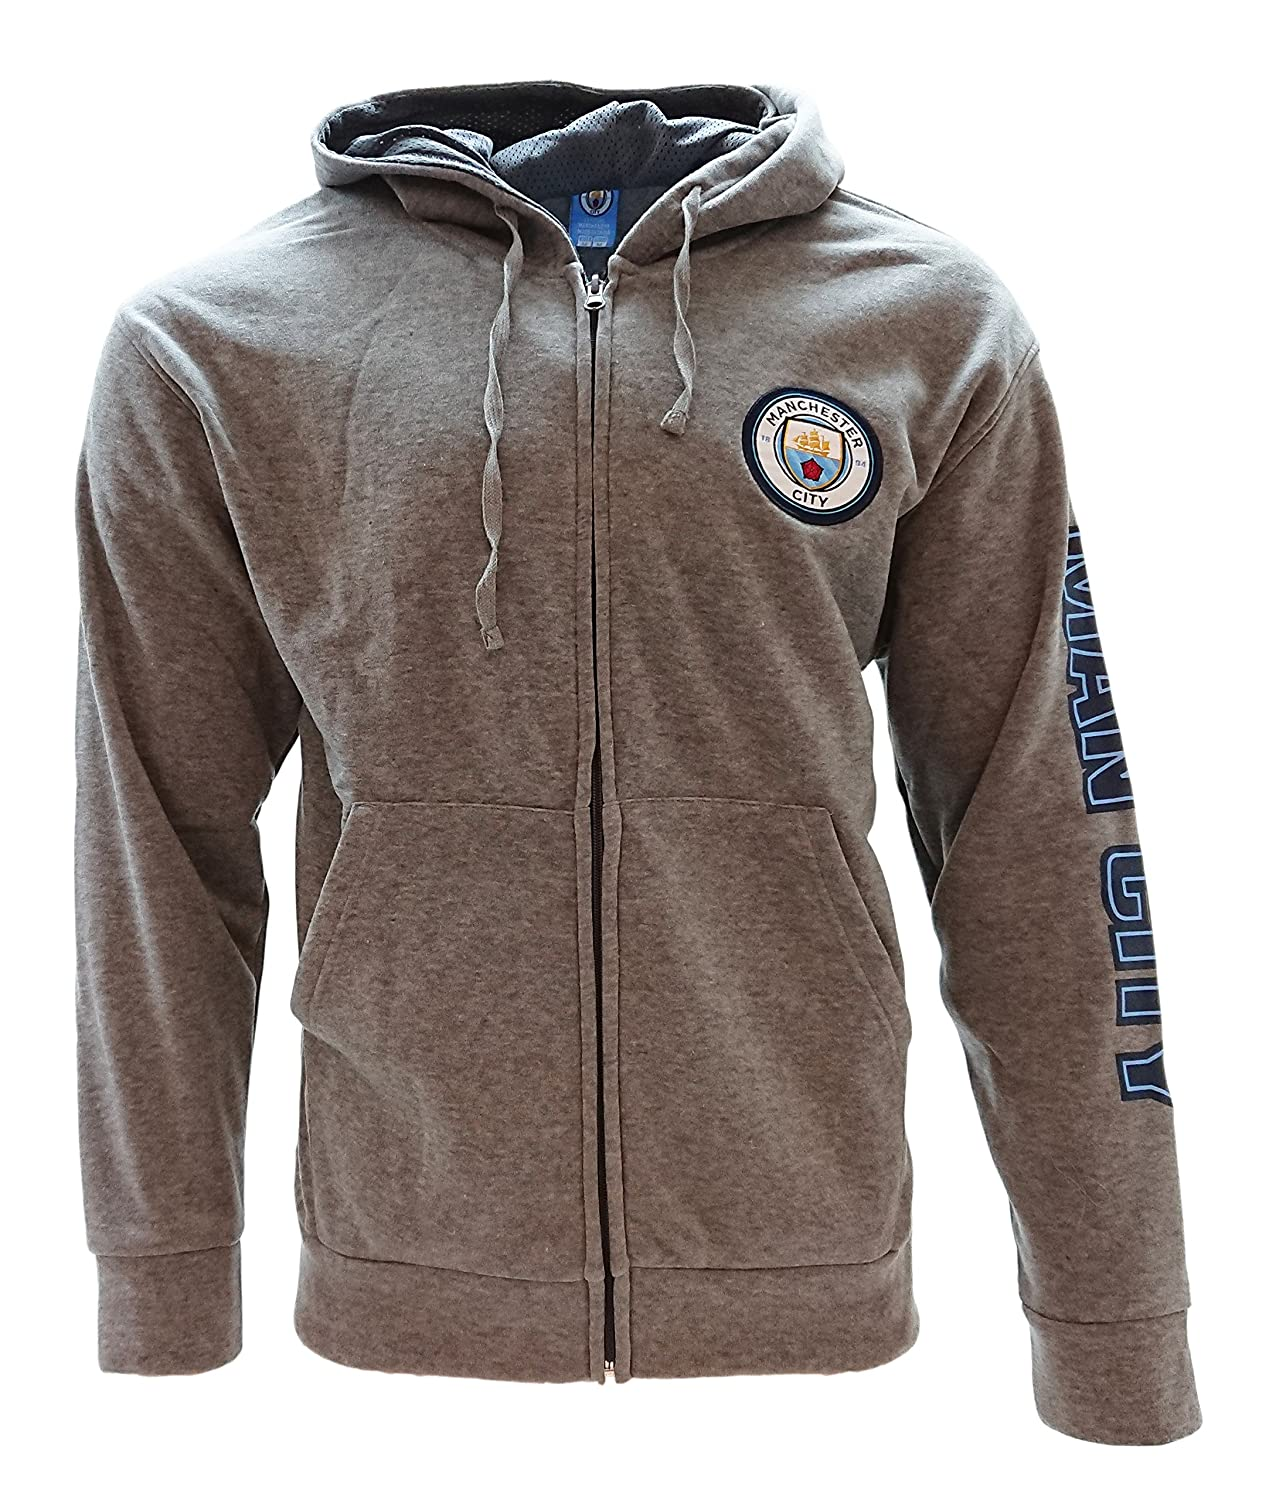 Icon Sports Manchester City Zip Up Track Jacket Hoodie Men Gray Official Licensed